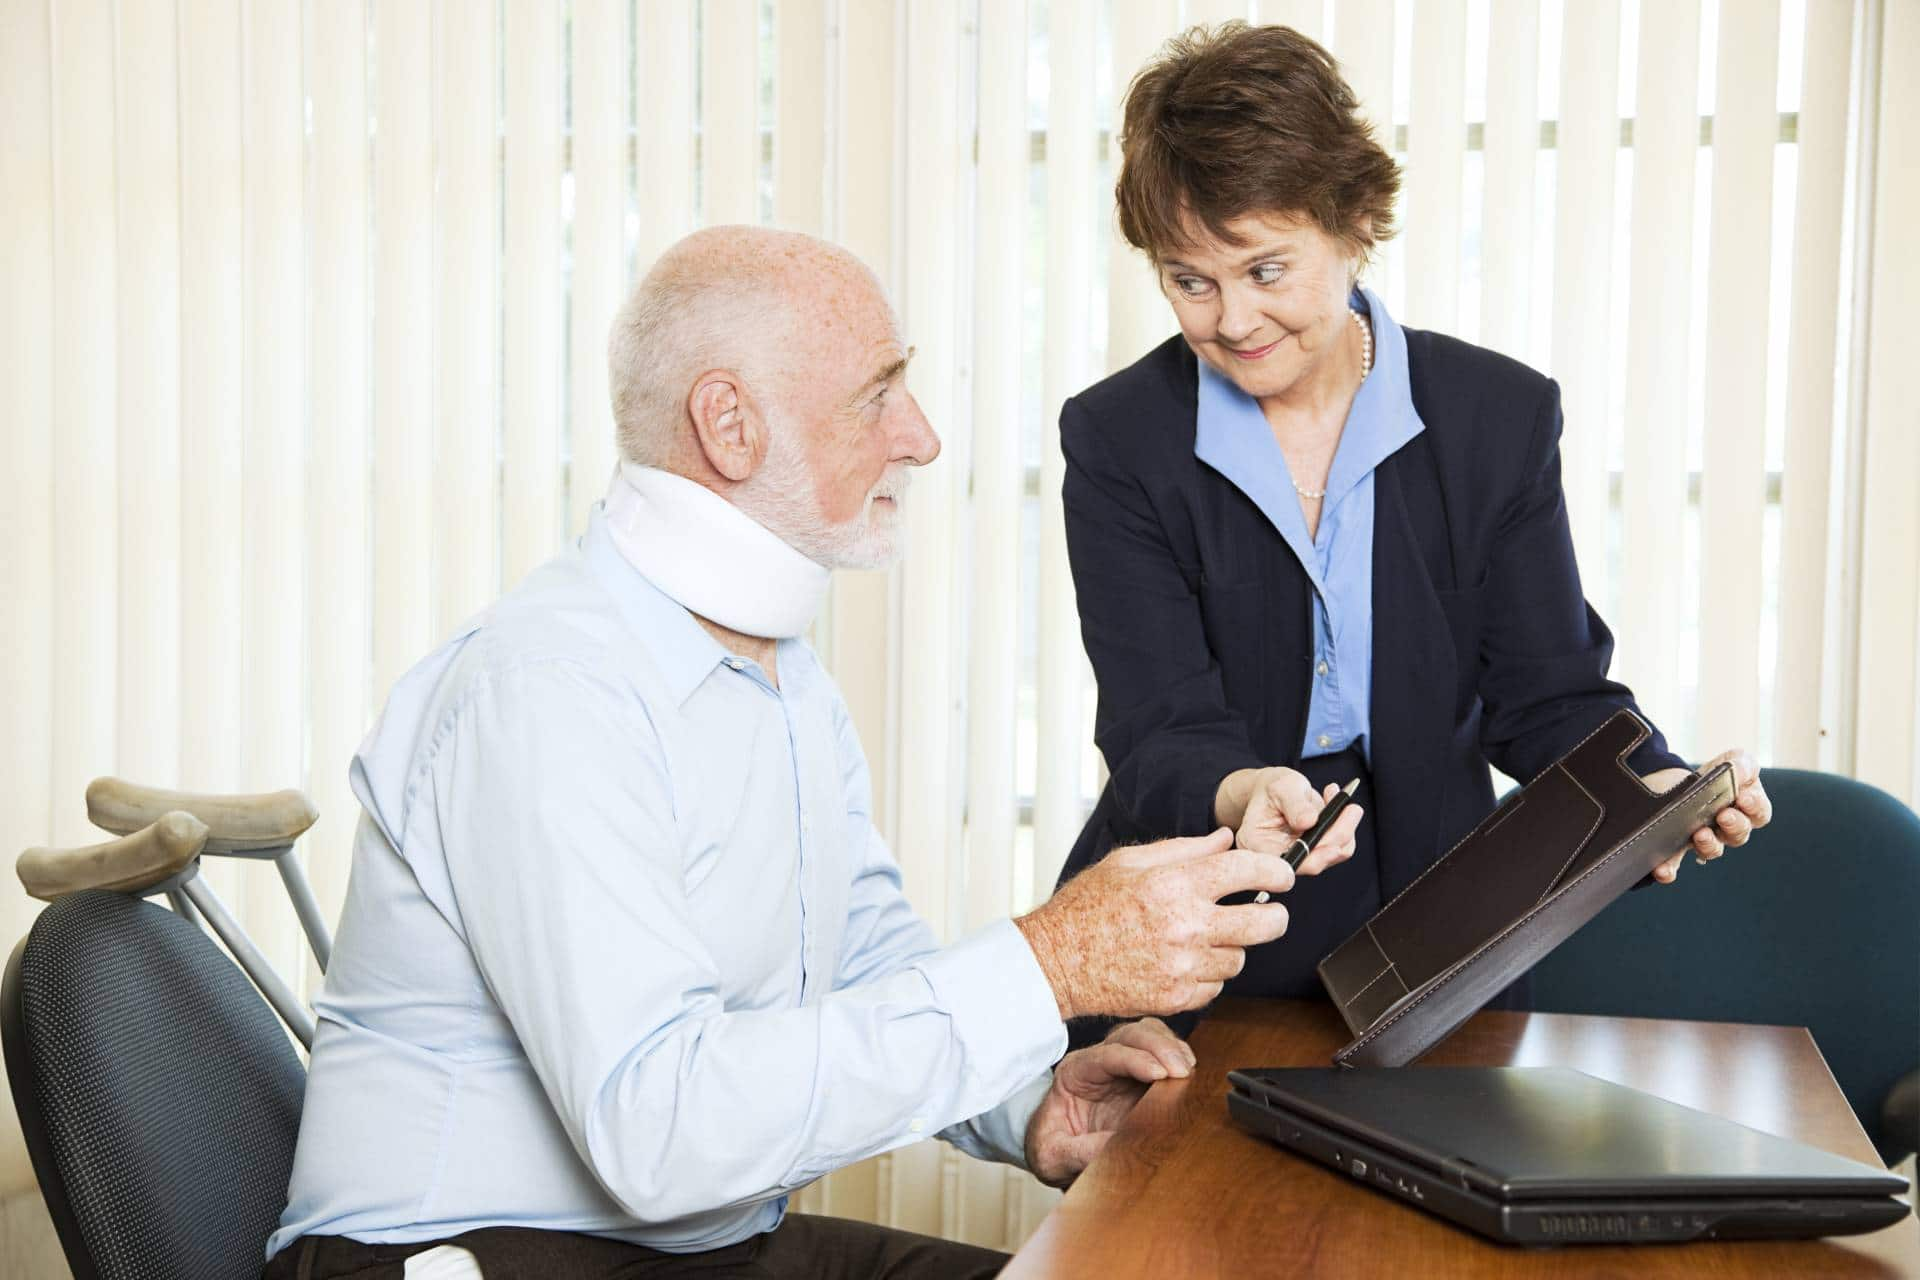 Schedule a free consultation with our personal injury lawyers at the Angell Law Firm in Roswell, Ga.